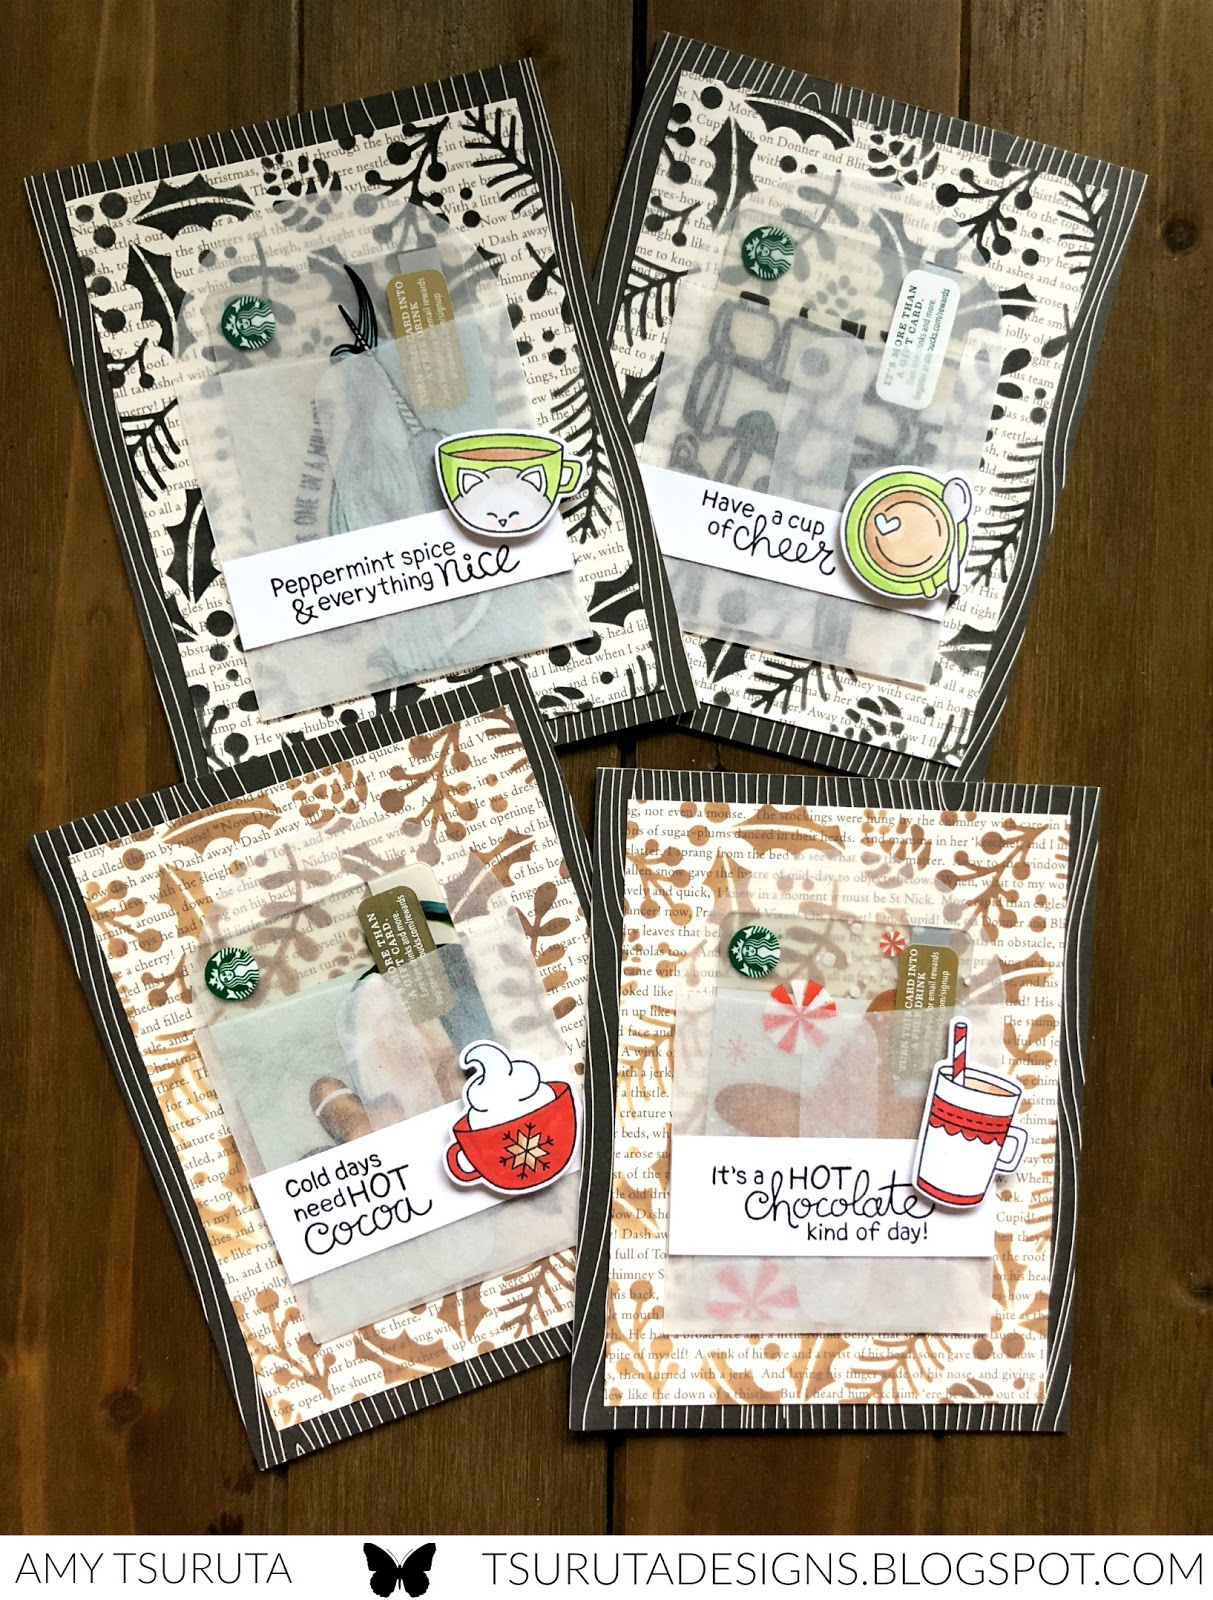 Deck the Halls with Inky Paws Week - Amy Tsuruta | Starbucks Gift Card holders using Cup of Cocoa Stamp set by Newton's Nook Designs #newtonsnook #handmade